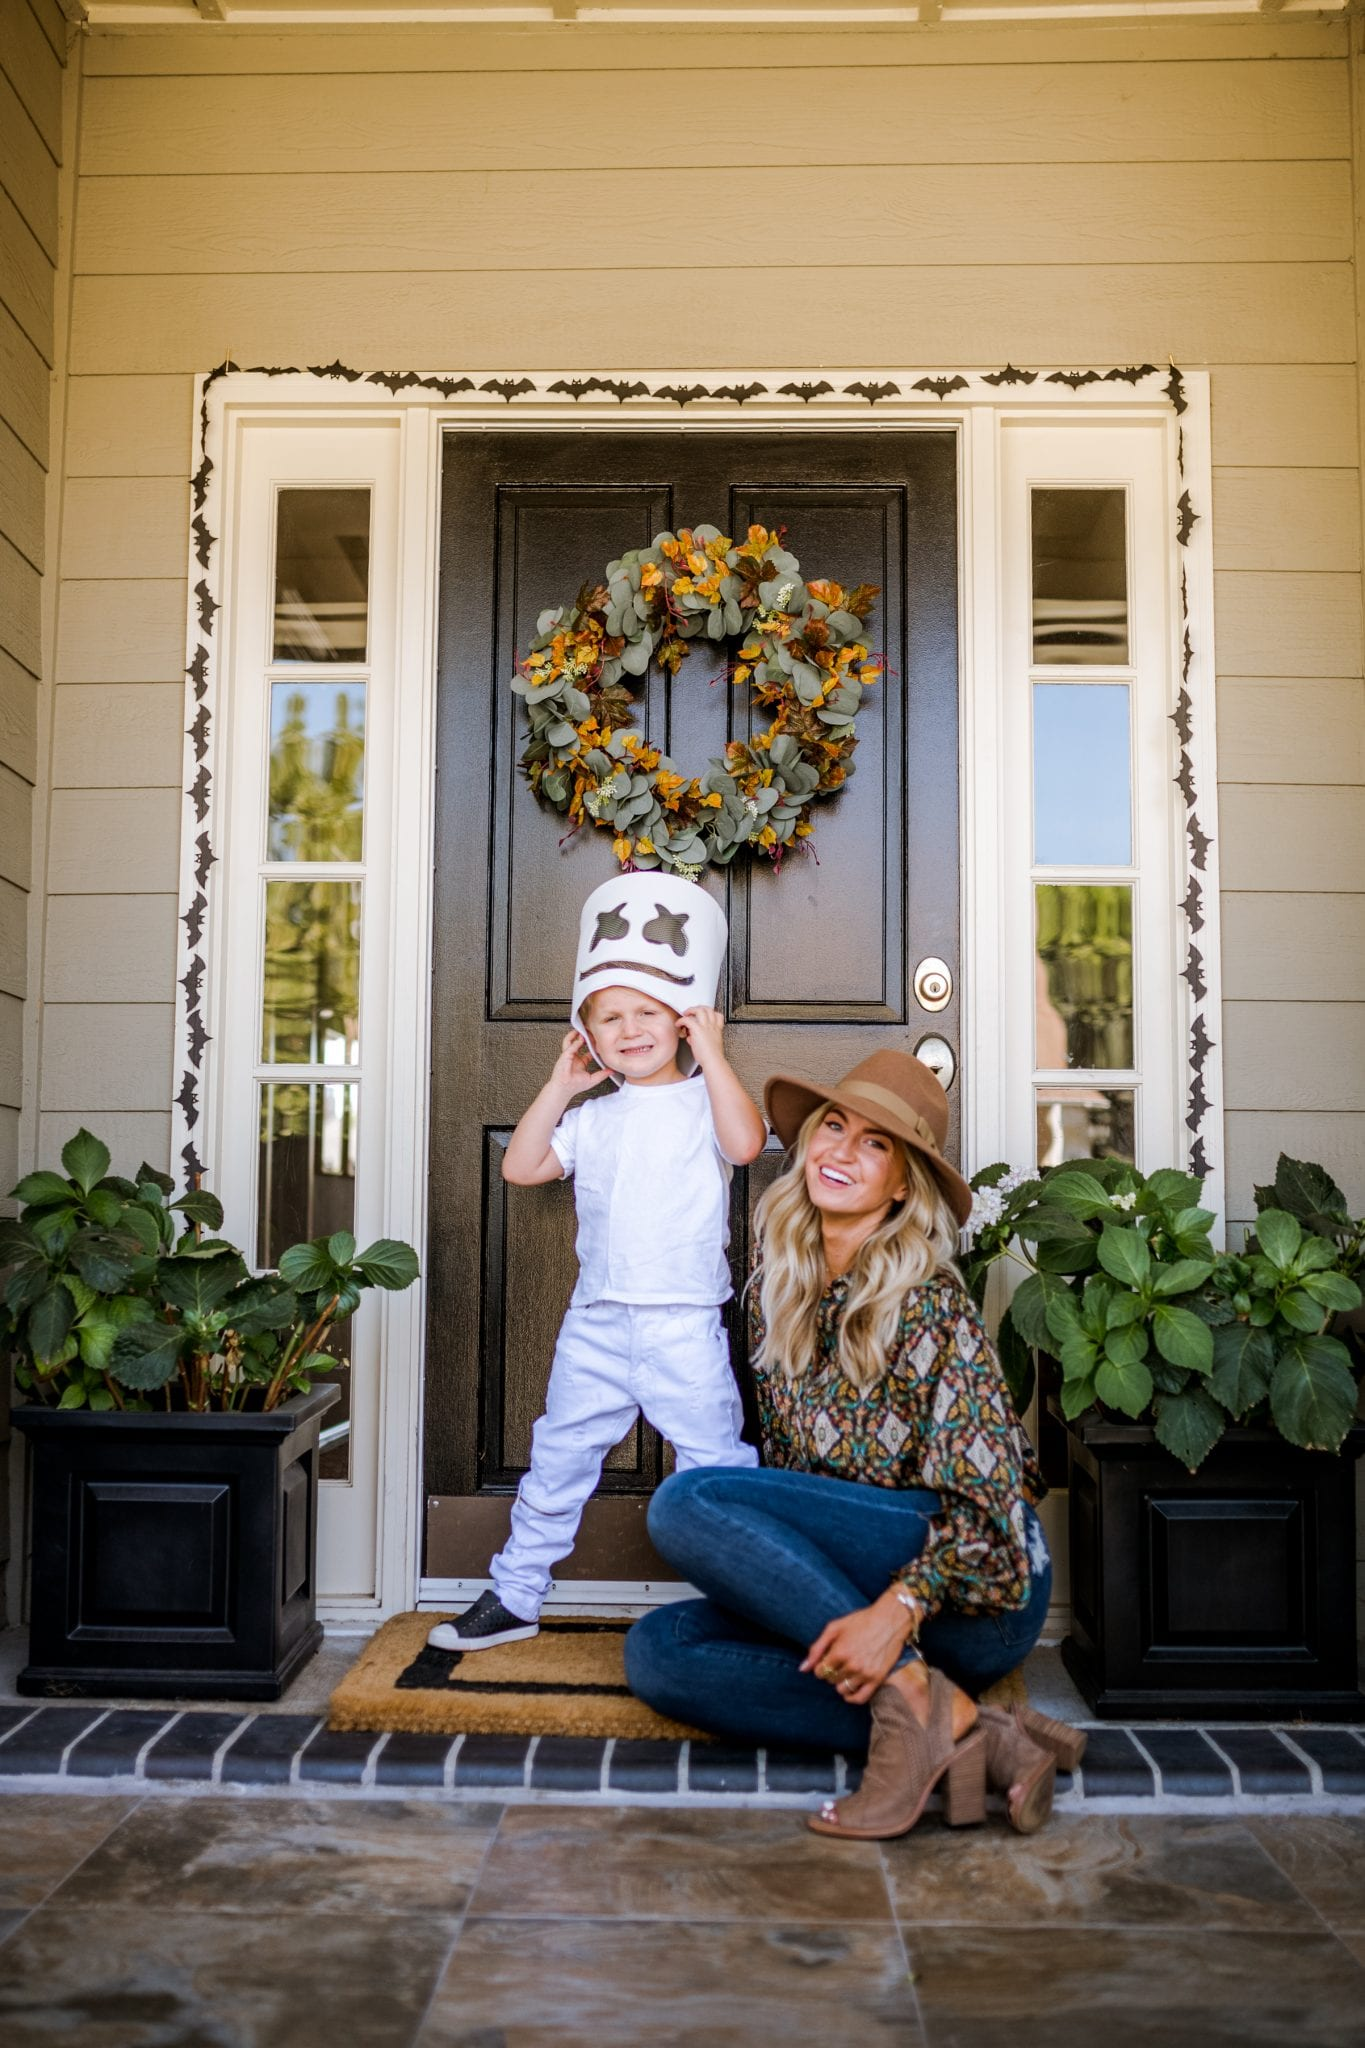 HOW TO CREATE A CUSTOM FALL WREATH + ELI'S COSTUME REVEAL